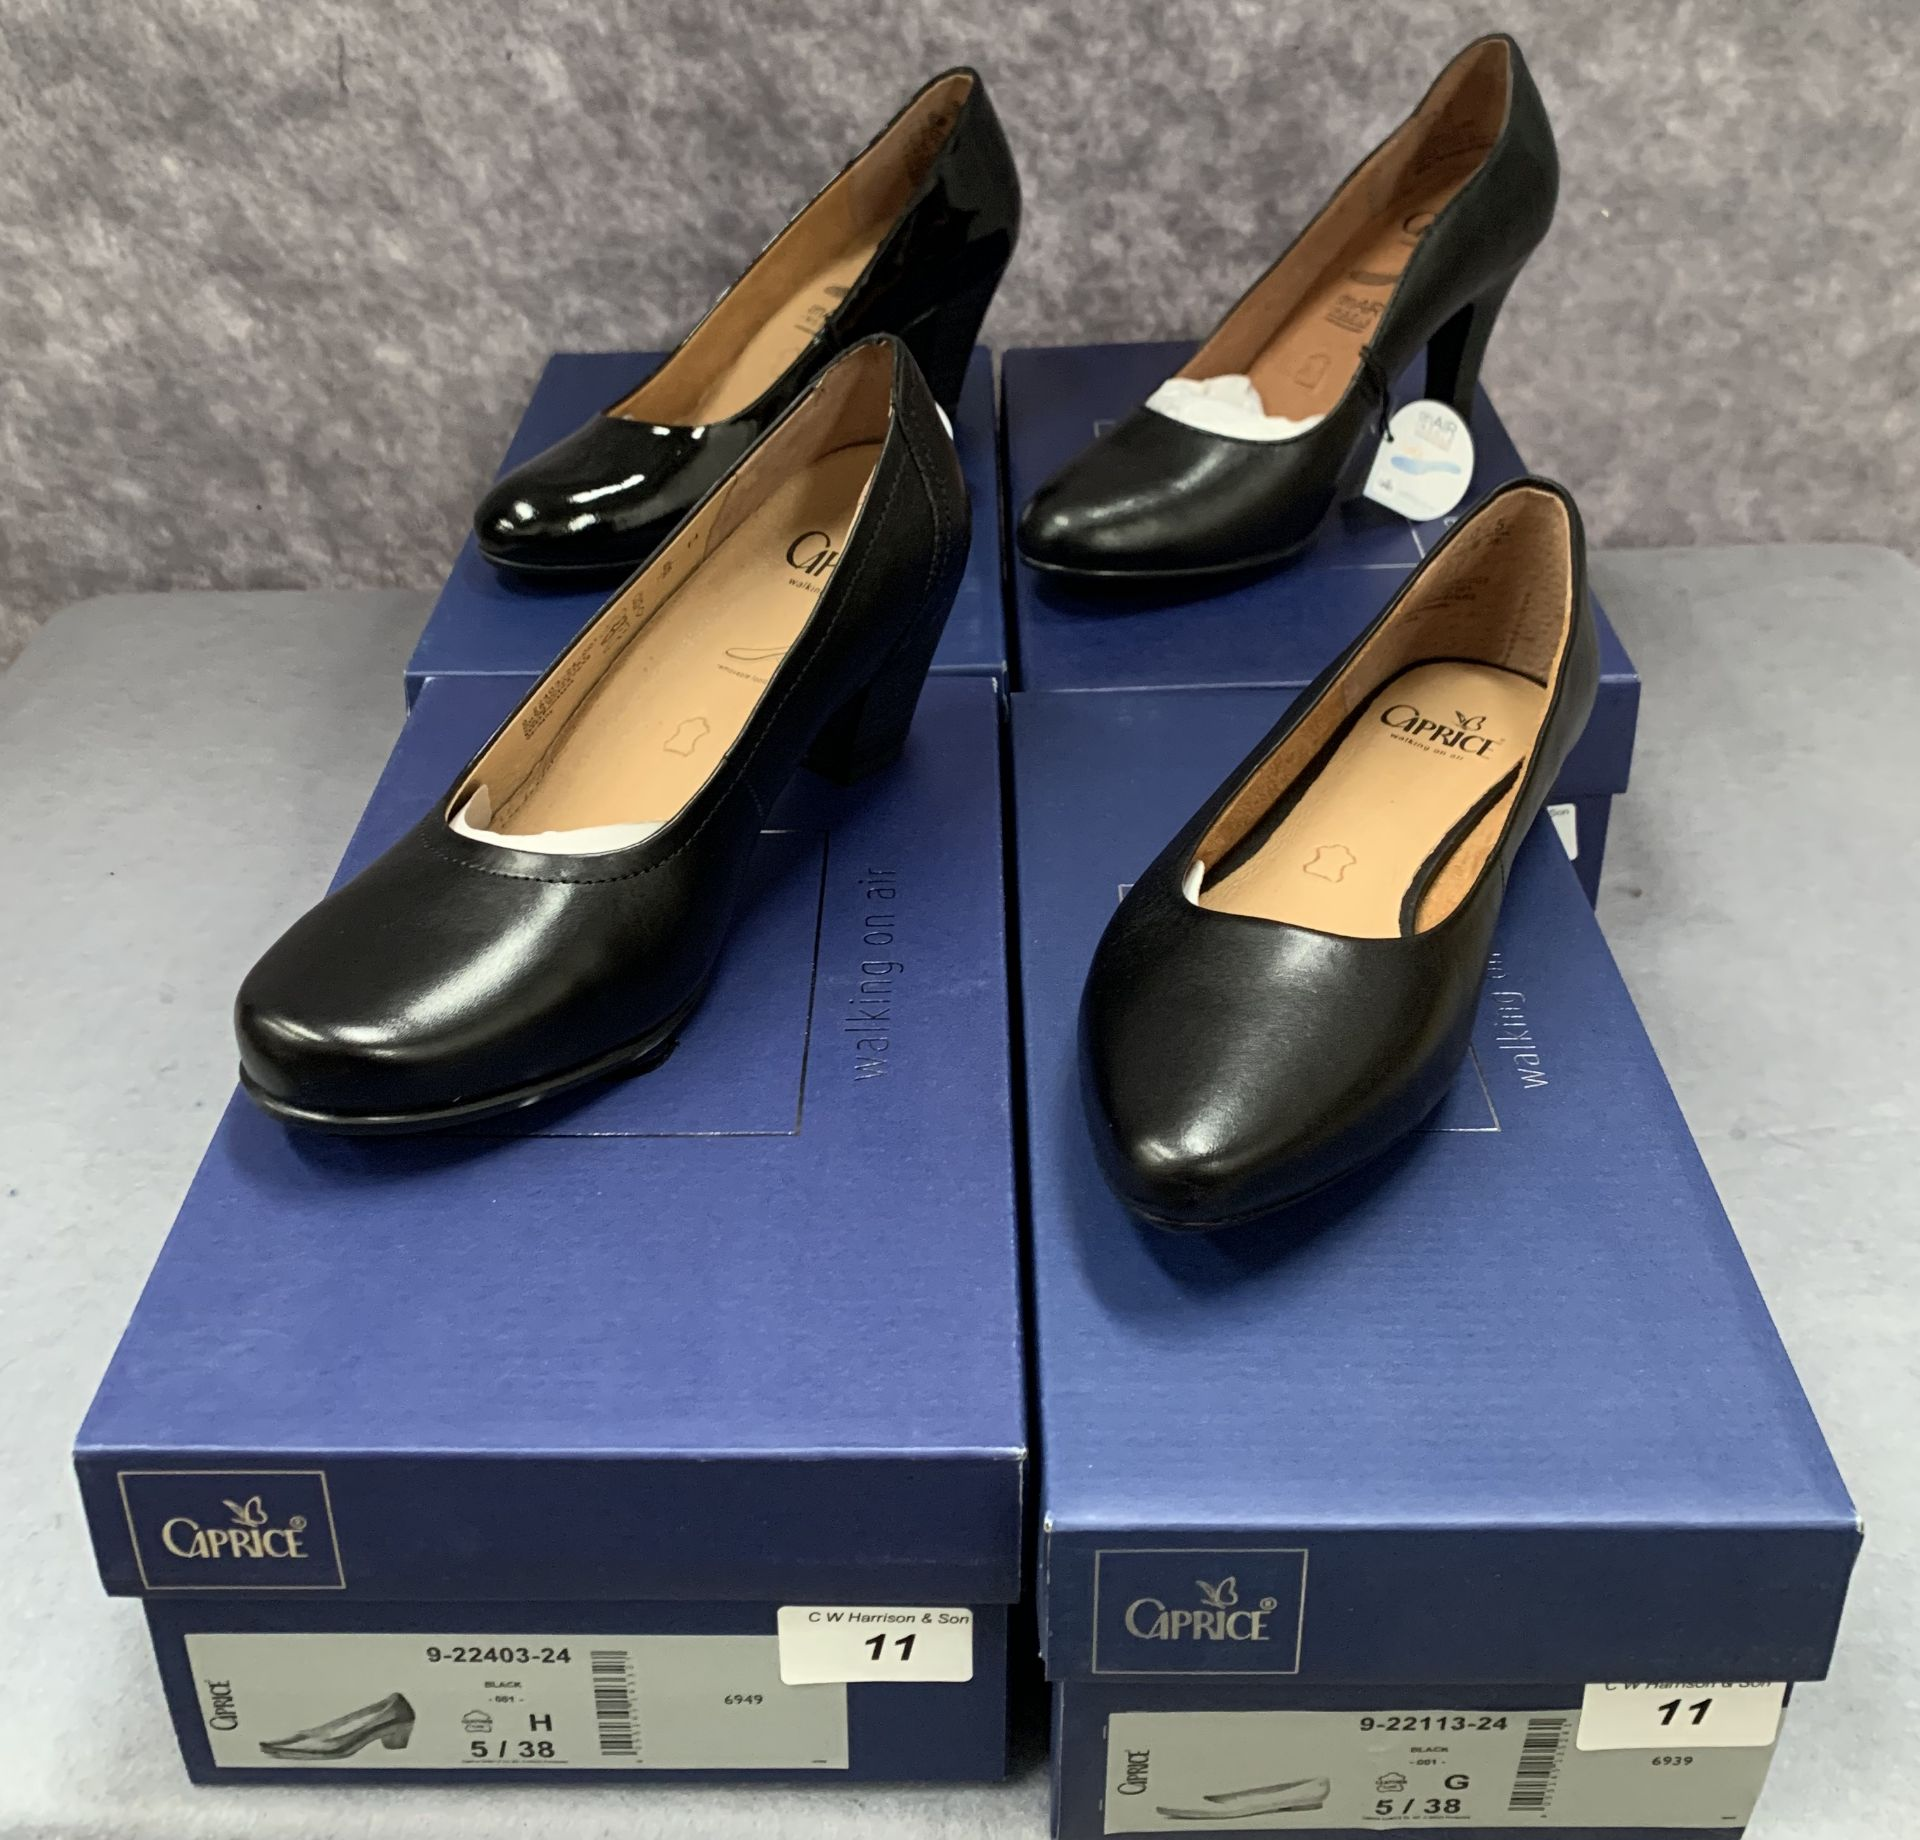 Lot 11 - Four pairs of Caprice ladies shoes in black, various styles, size 5, retail price £59.